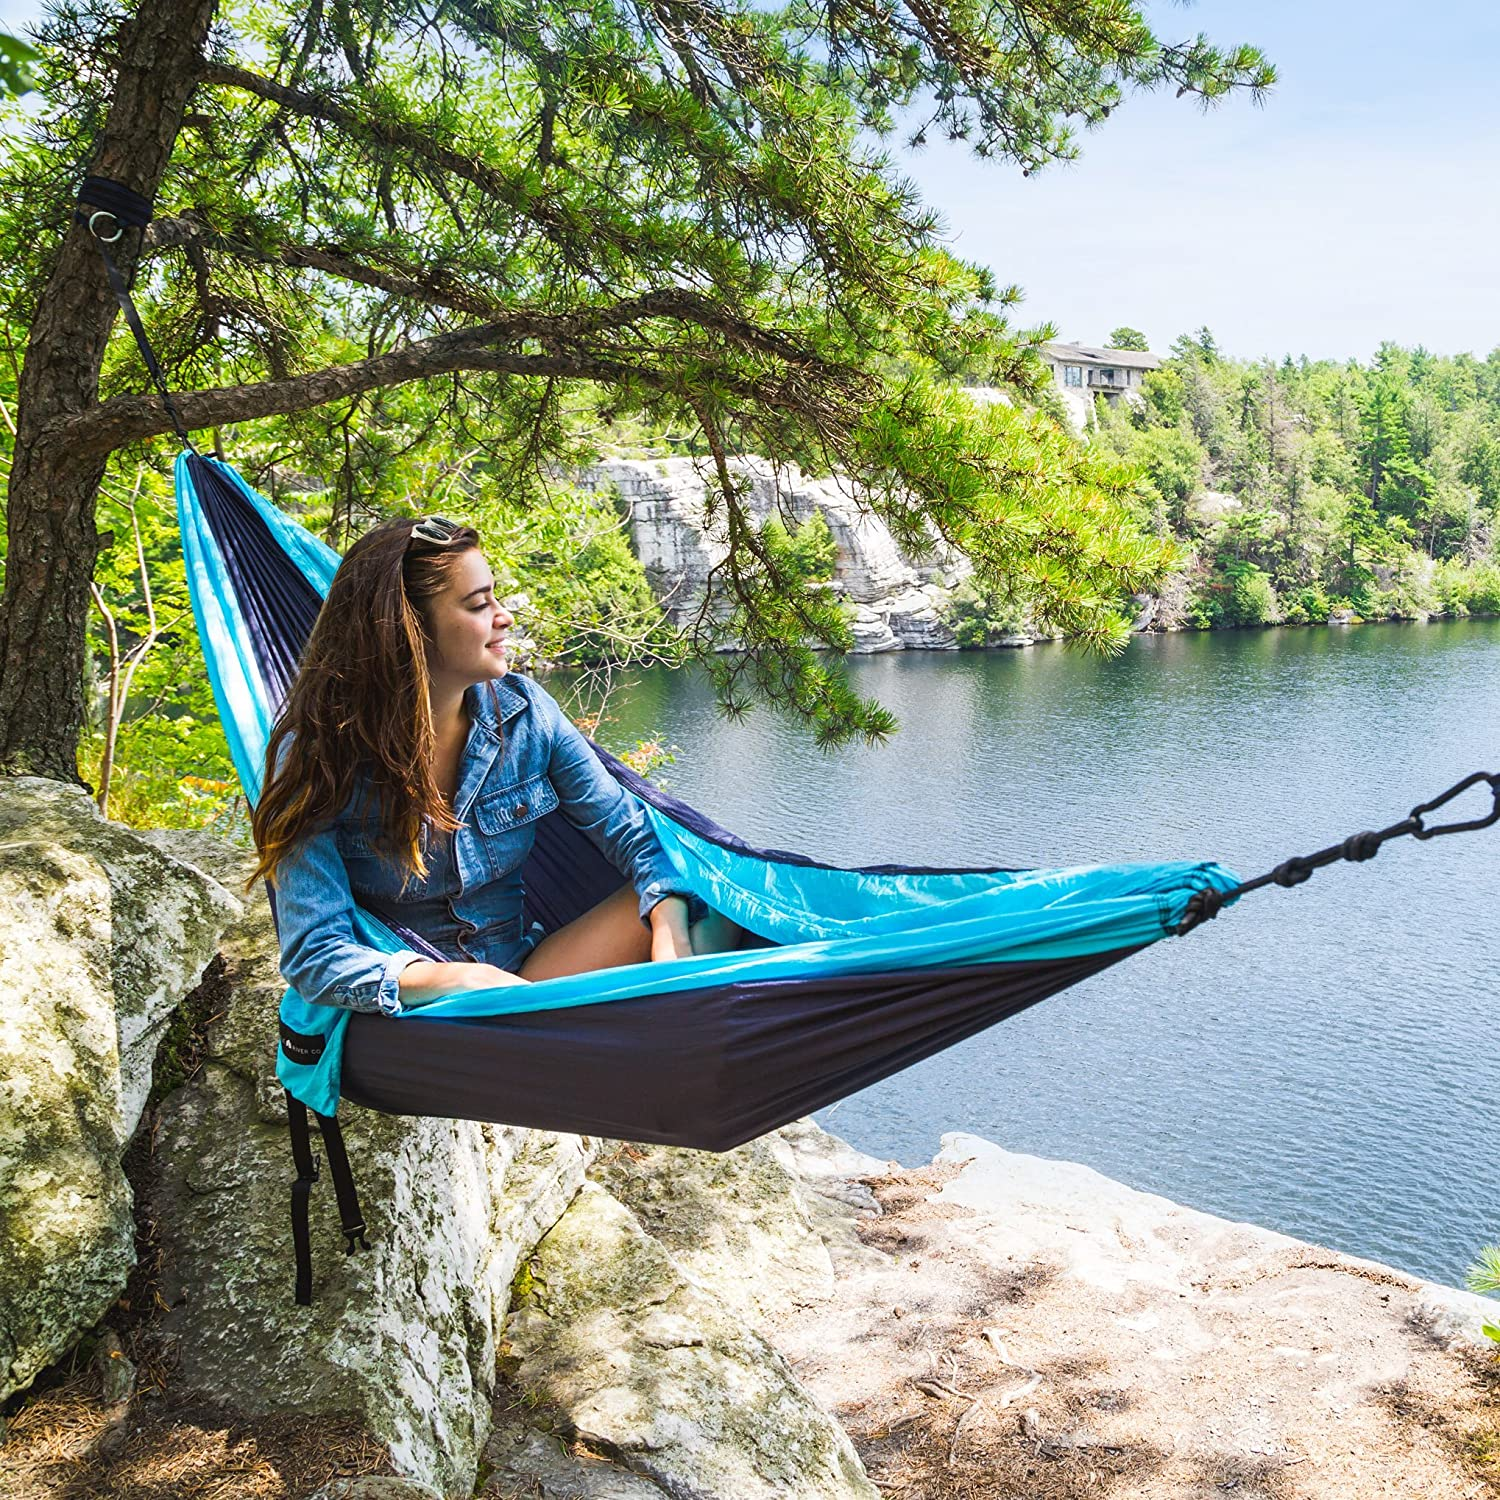 amazon    ultra durable camping double hammock nylon parachute fabric    pact  u0026 portable for indoor  u0026 outdoor relaxation   400 lb capacity with hanging     amazon    ultra durable camping double hammock nylon parachute      rh   amazon